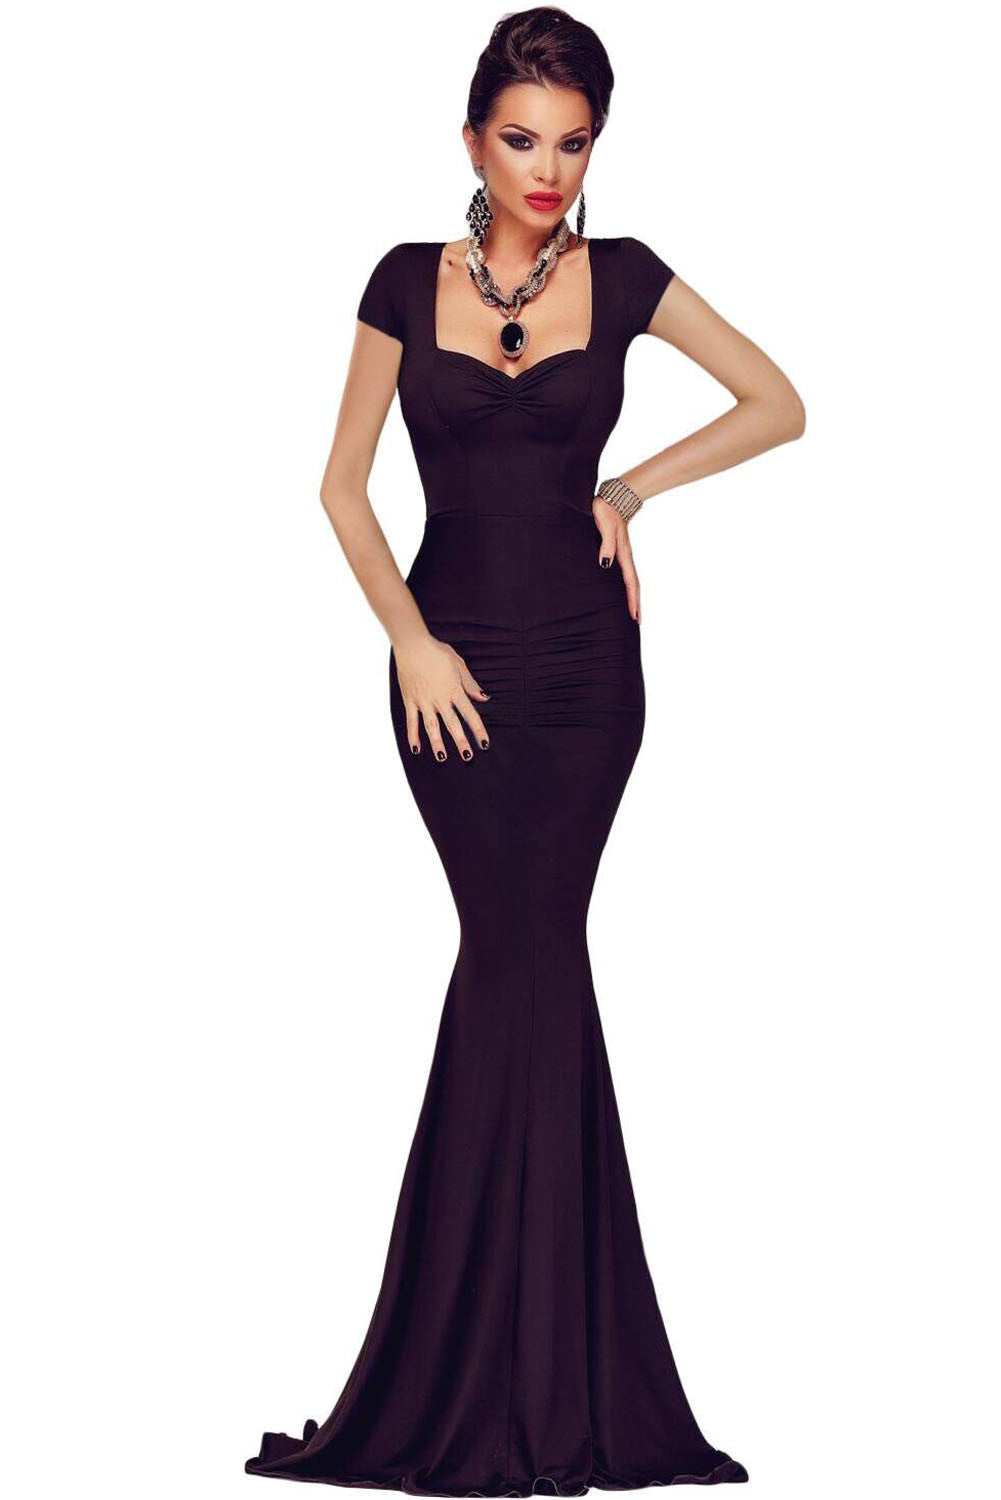 Black Crisscross Back Tie Maxi Party Dress – SEXY AFFORDABLE CLOTHING c5020b821